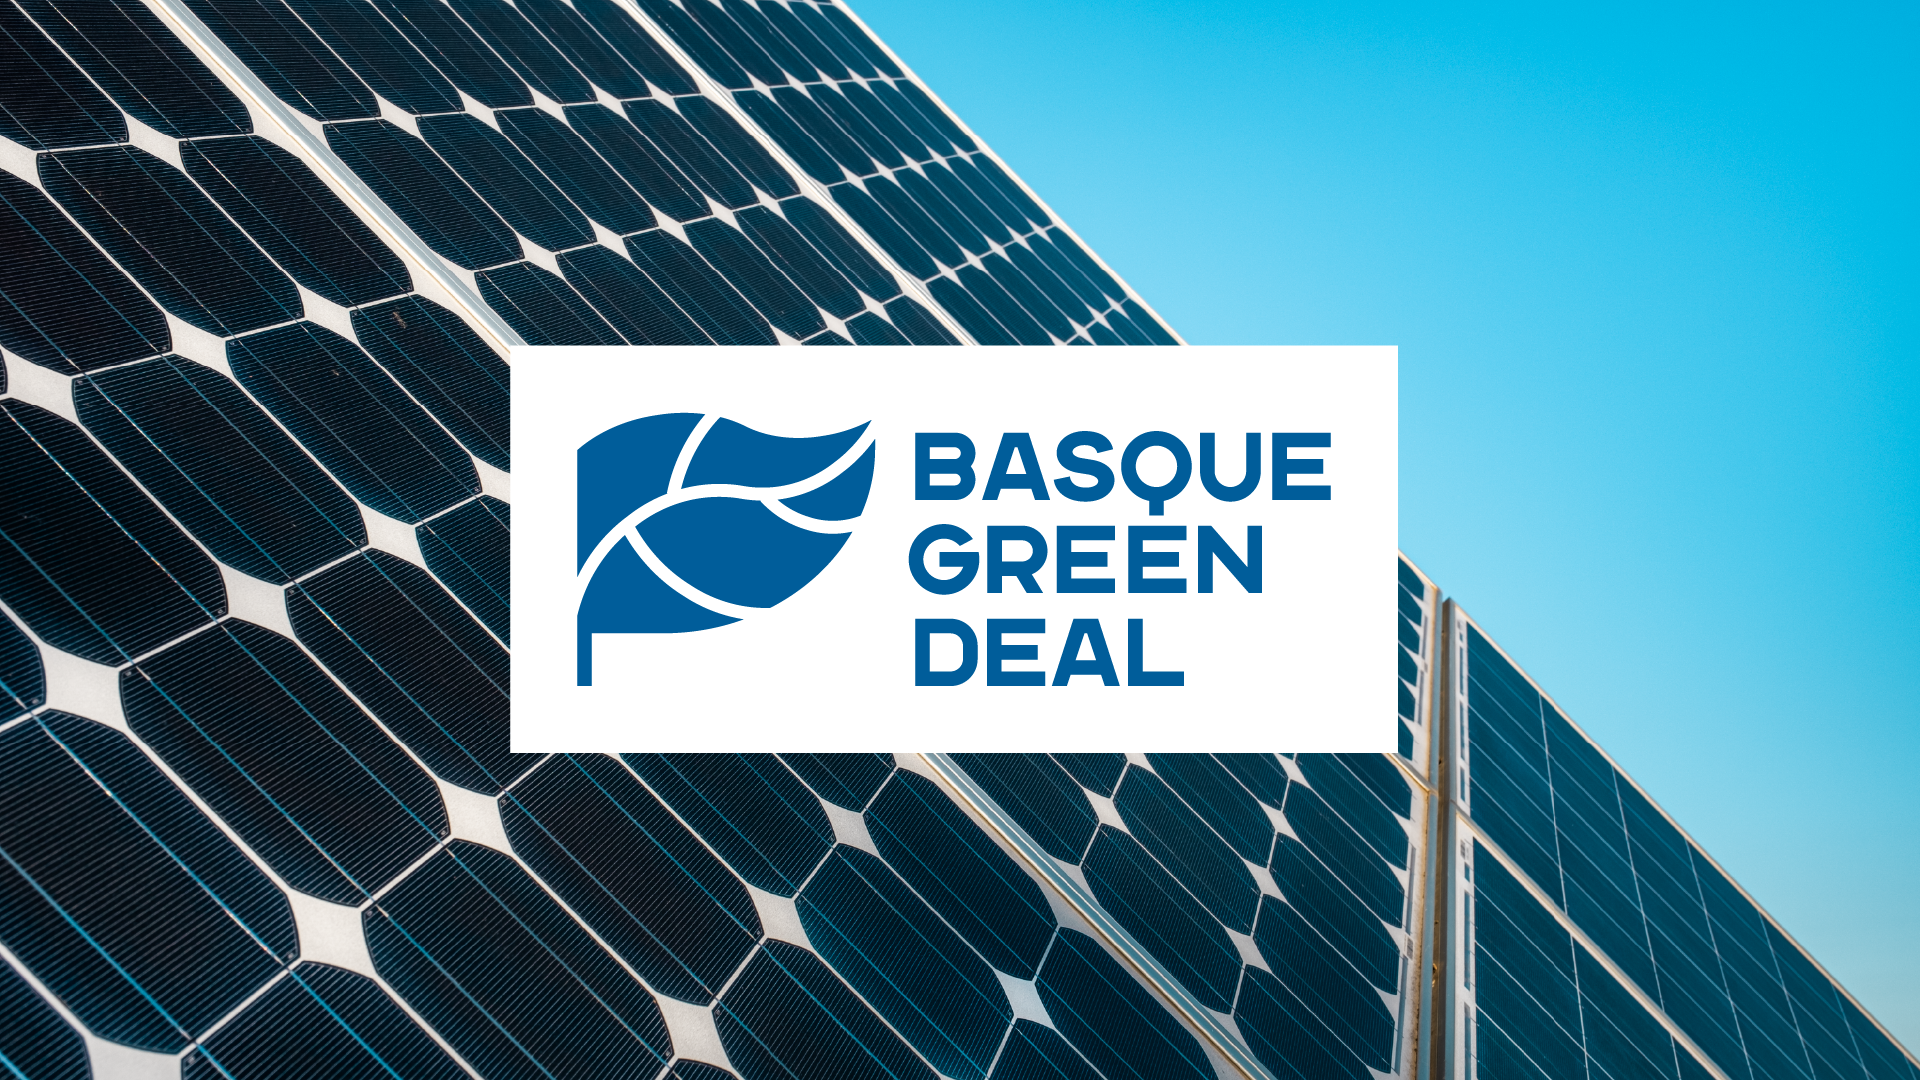 Basque_Green_Deal_11R.png